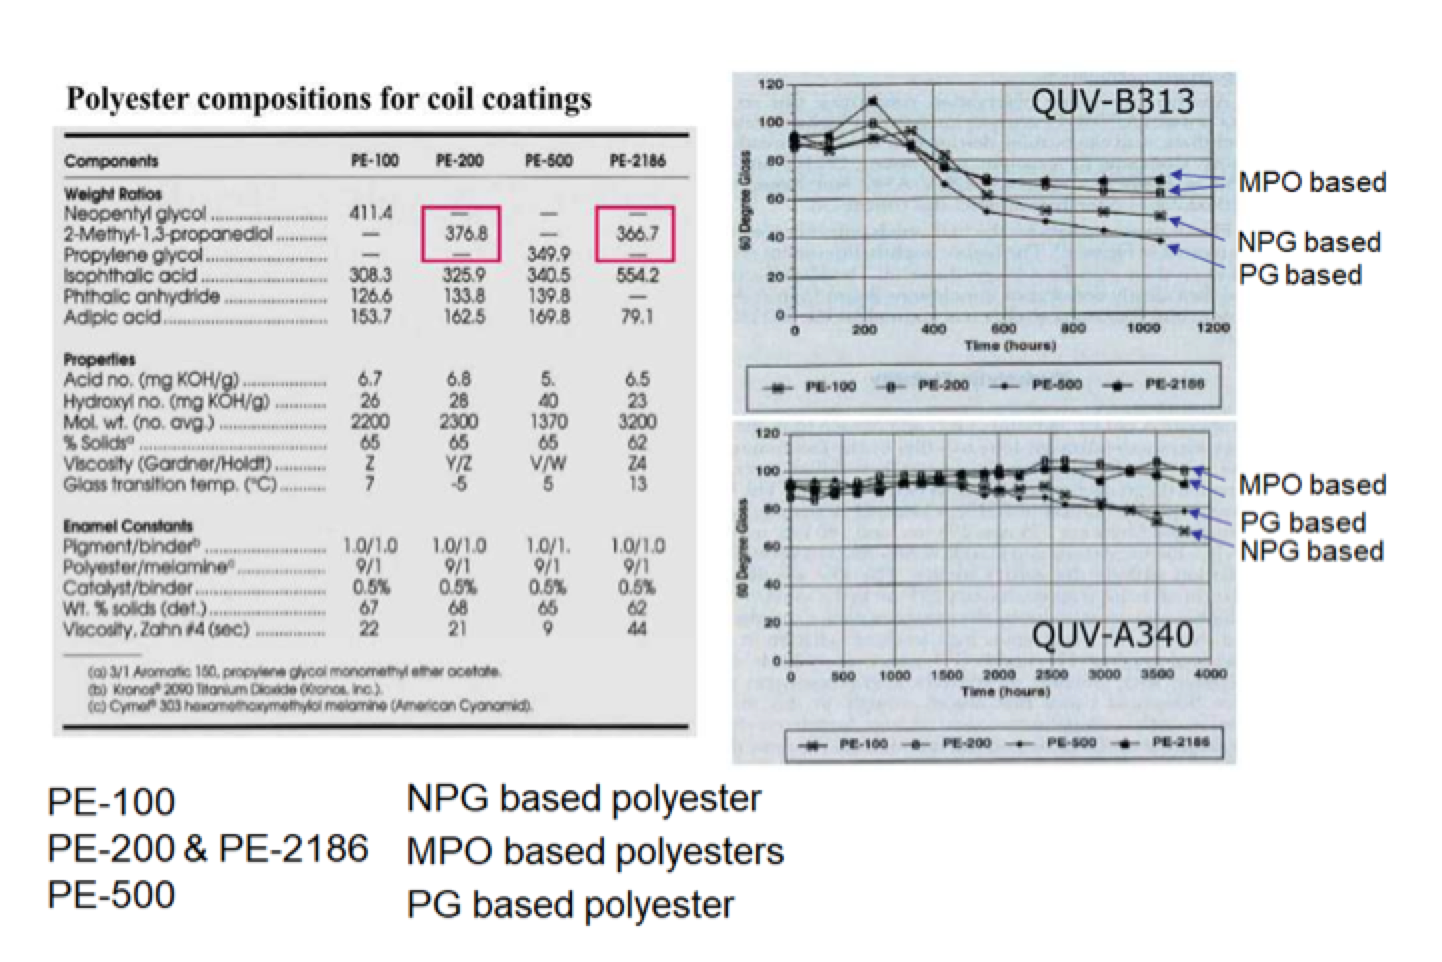 polyester-composition-for-coil-coatings-graph